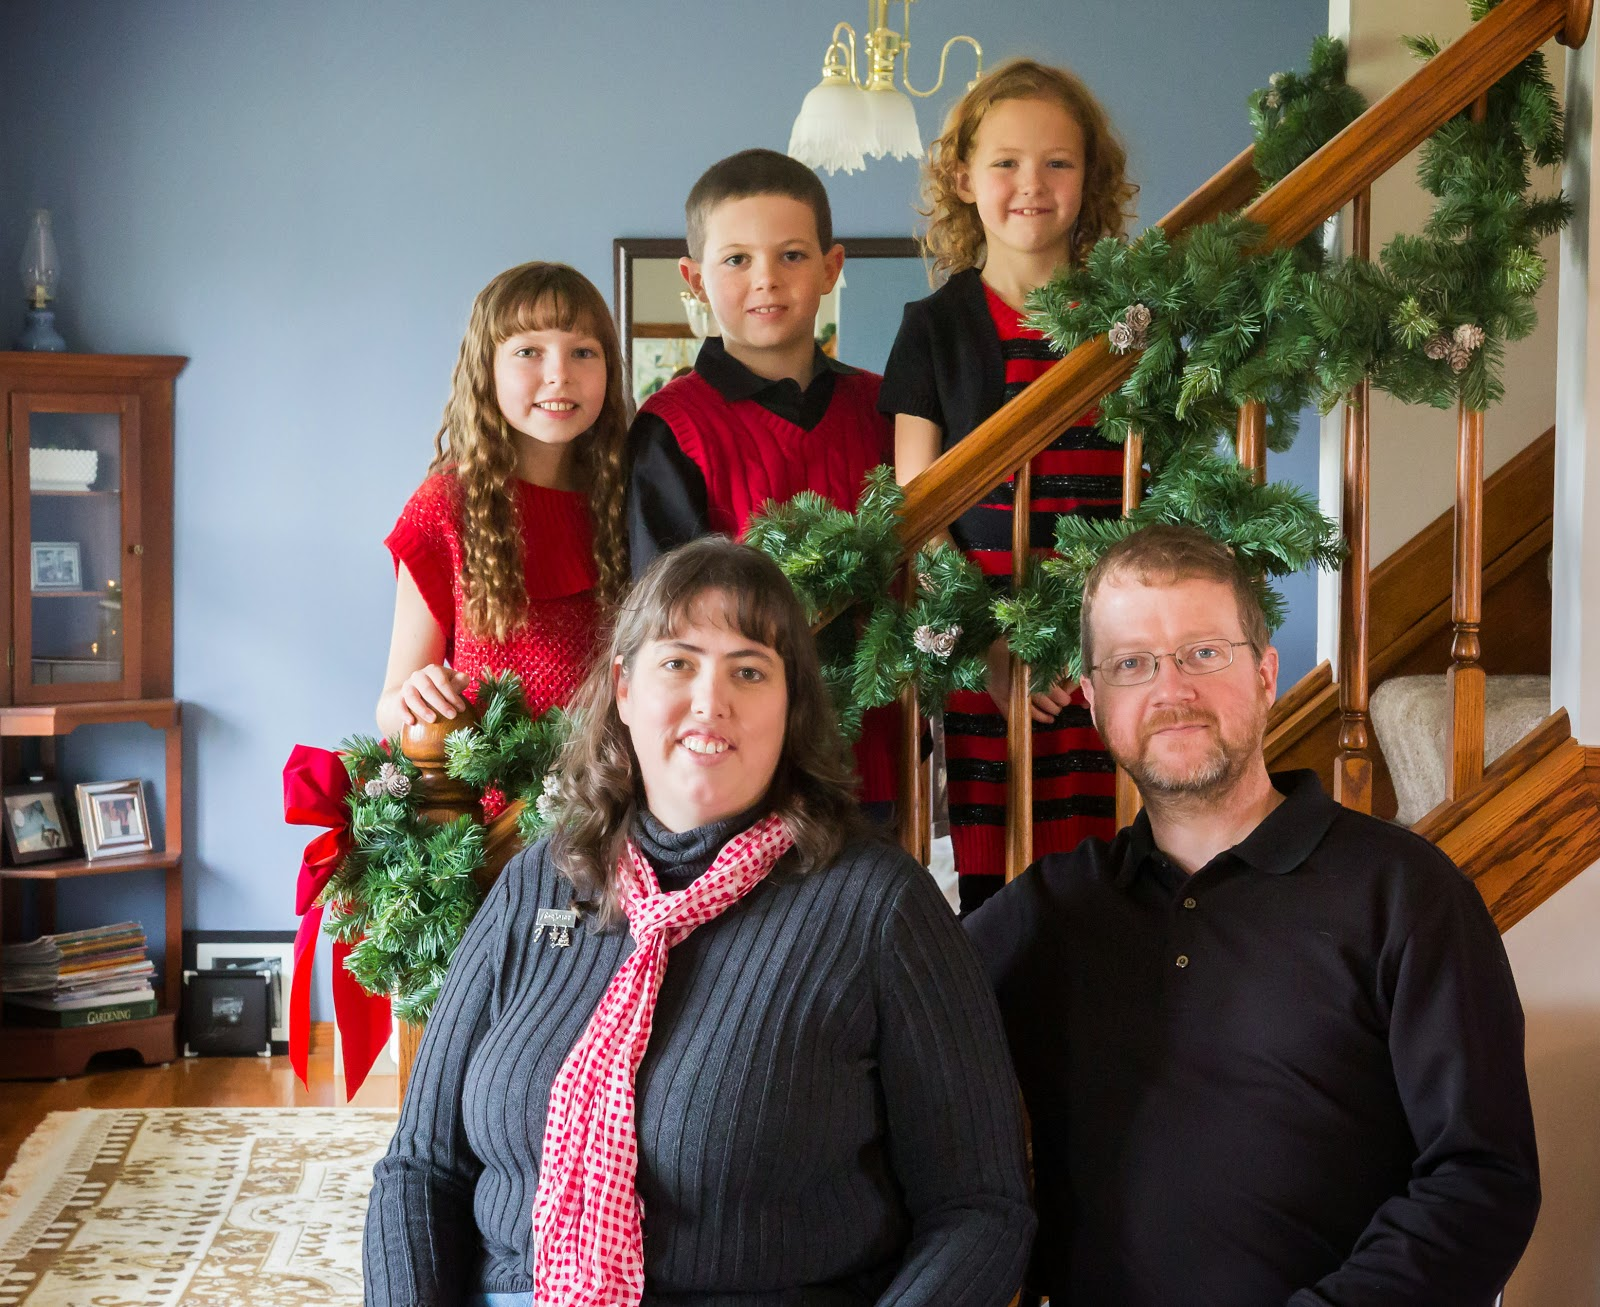 Wordless Wednesday: Merry Christmas from our family to yours!